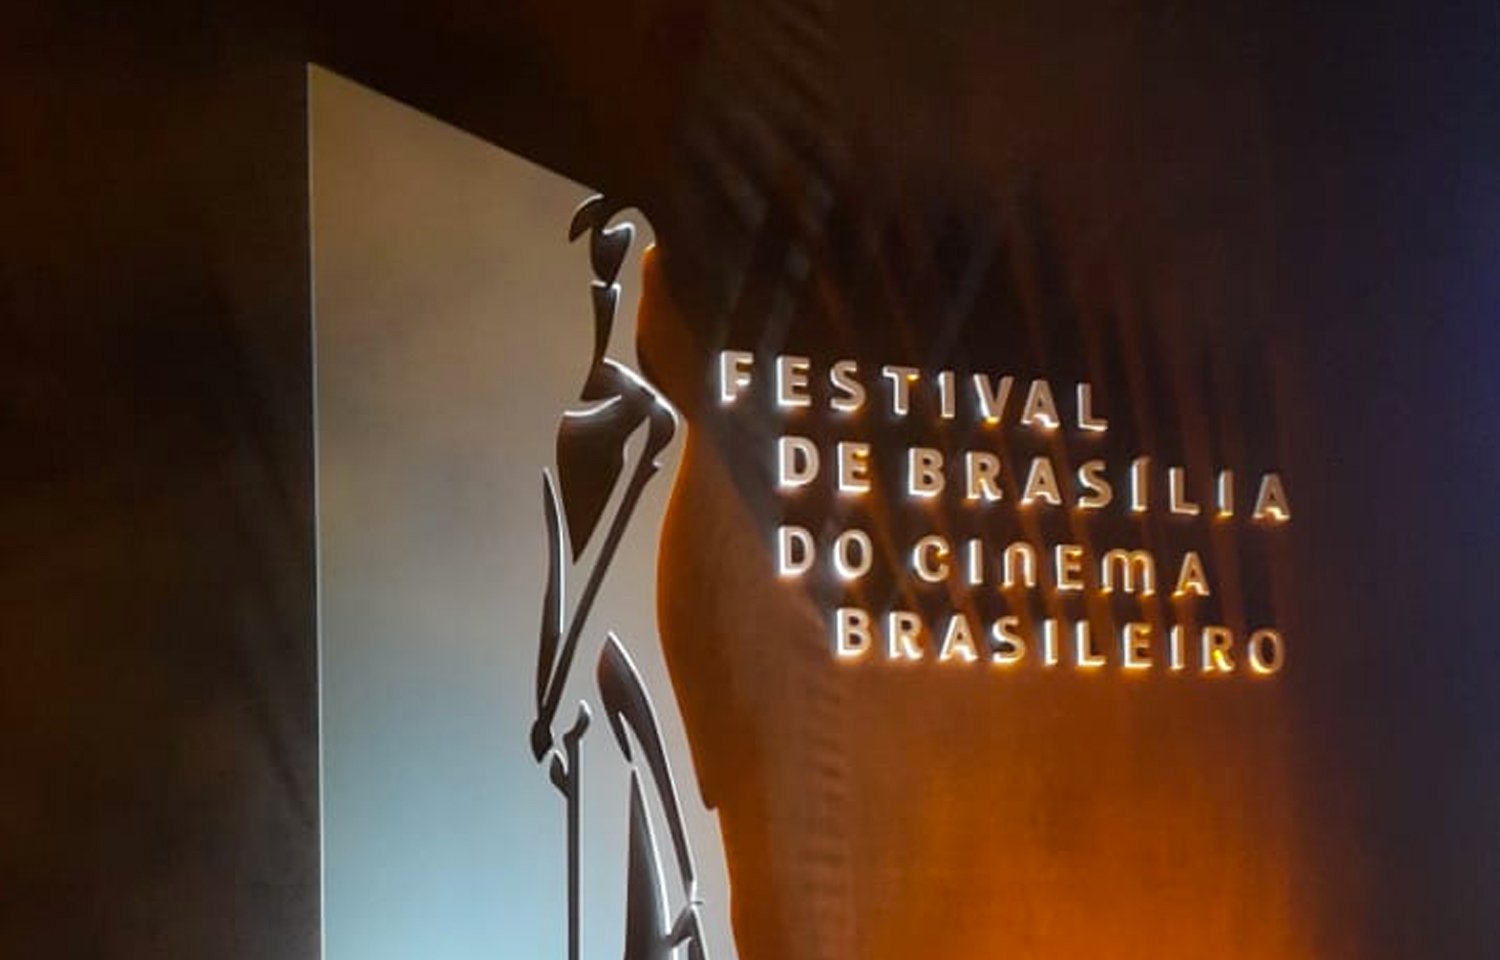 51º Festival de Brasília do Cinema Brasileiro